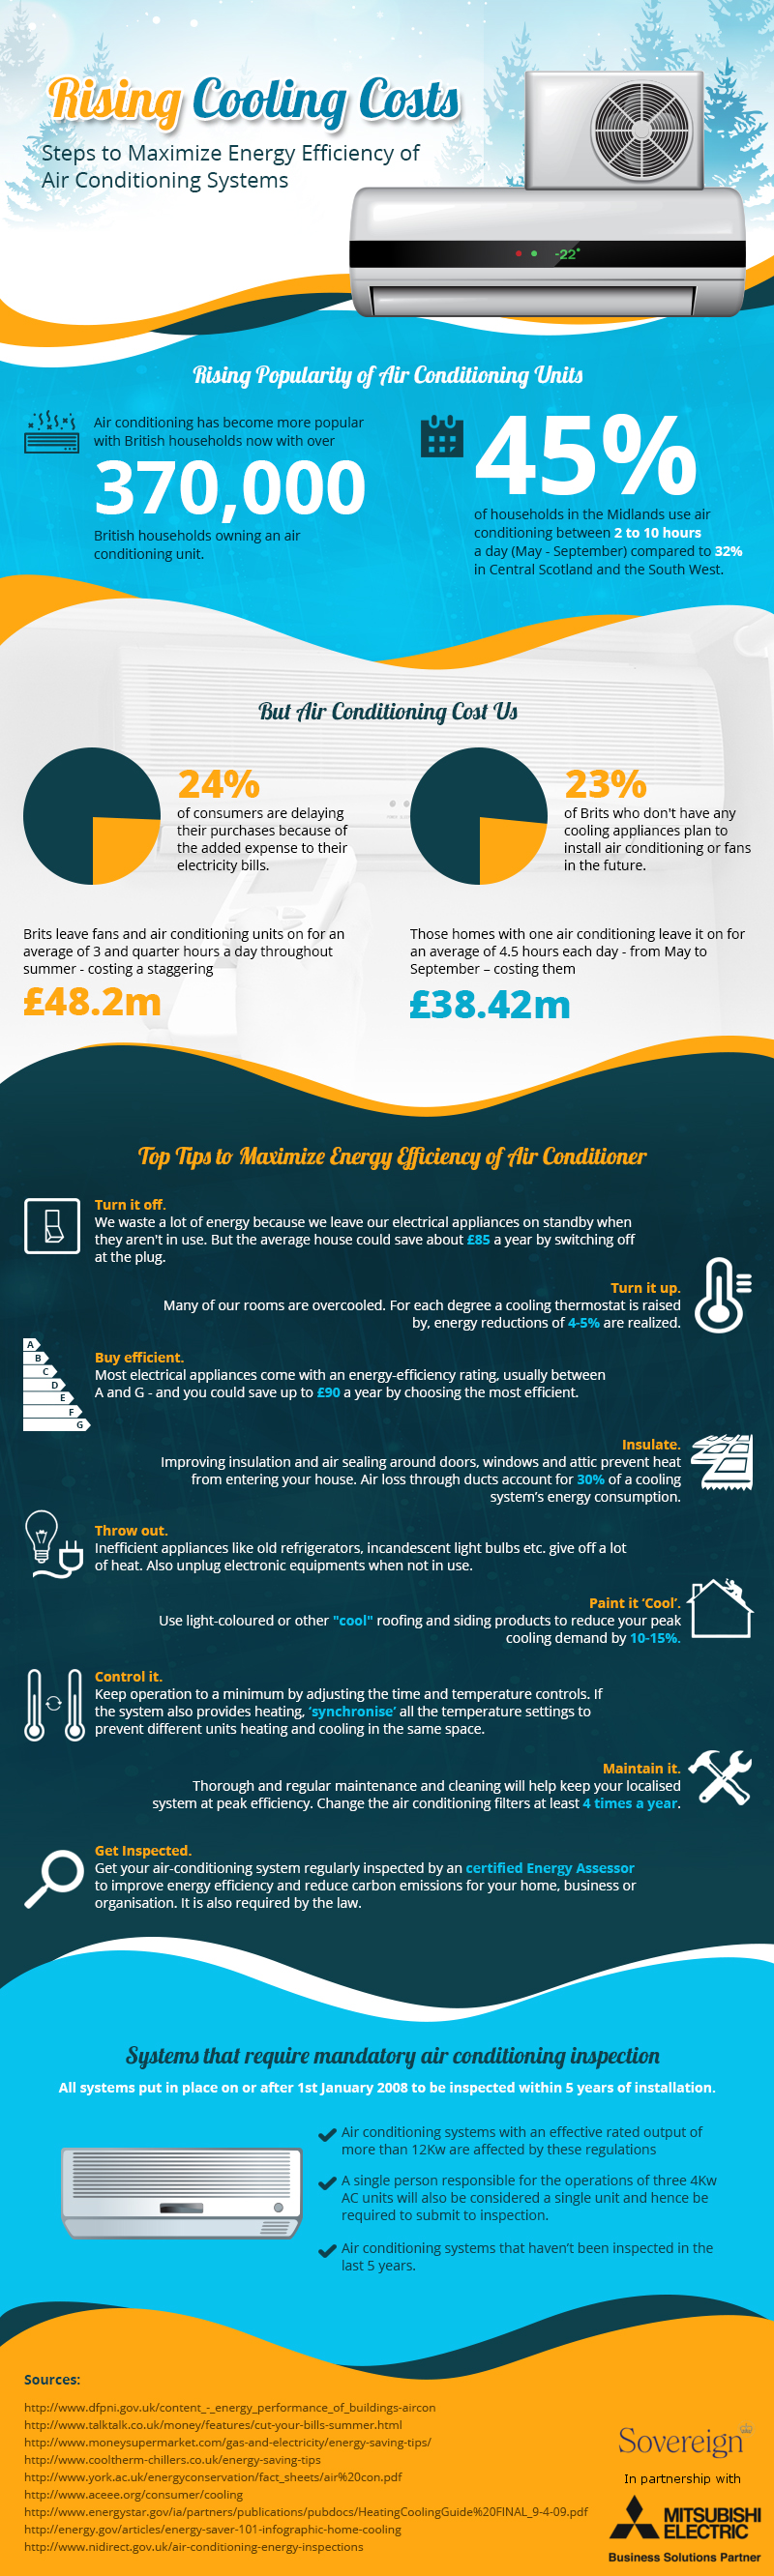 infographic of the Costs of Cooling down